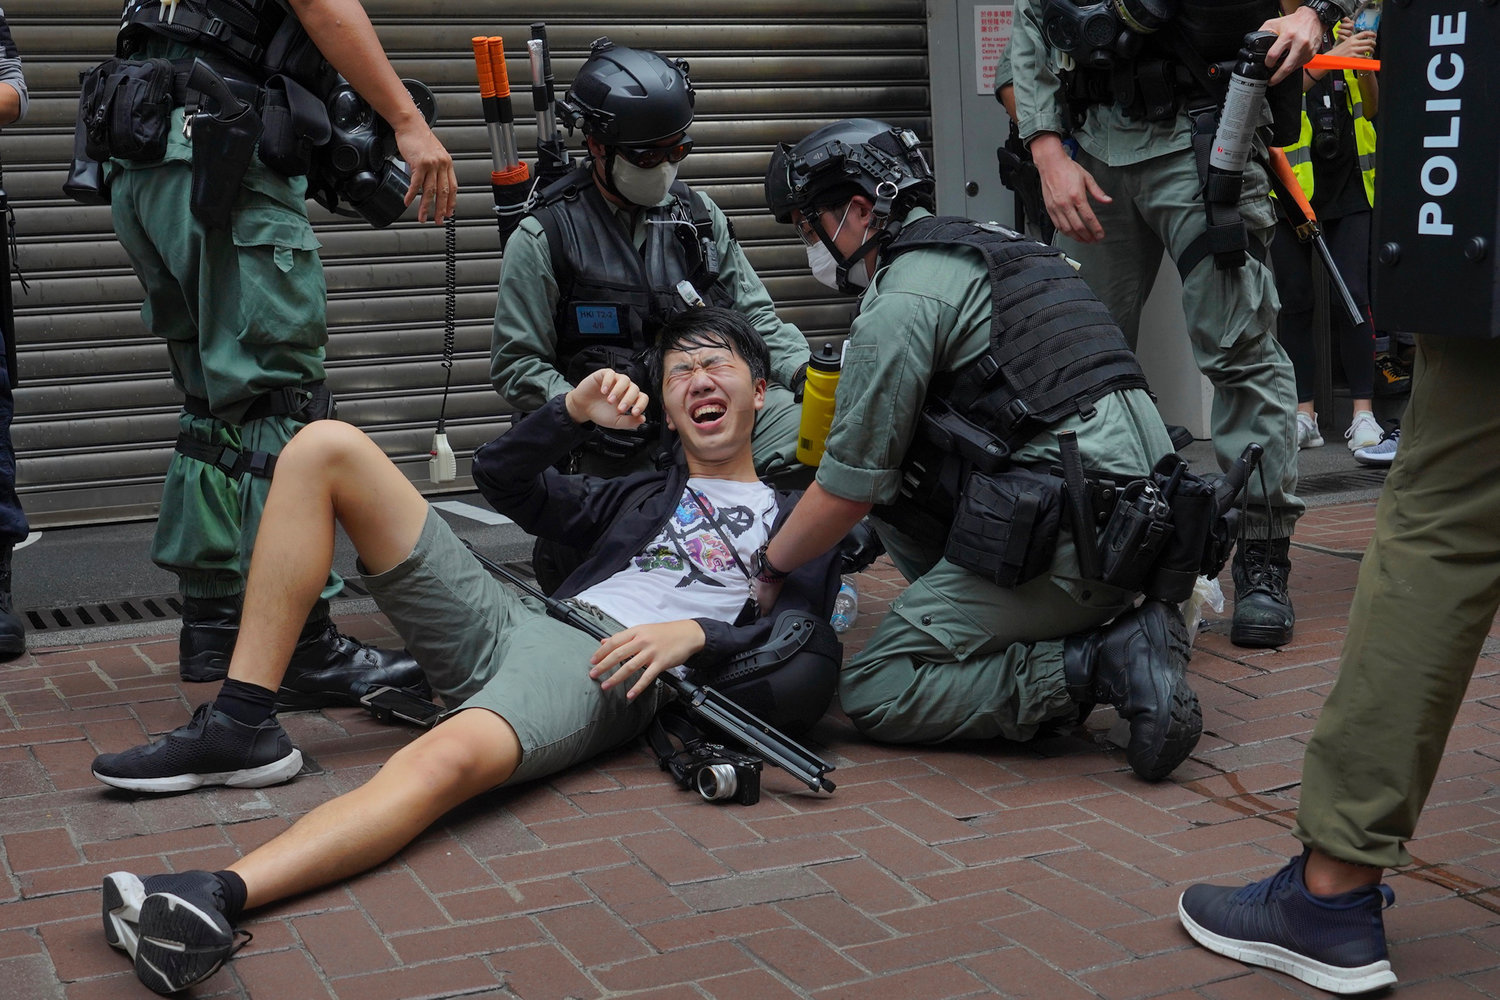 A reporter falls down after being sprayed with pepper spray by police during a protest in Causeway Bay during the annual handover march in Hong Kong, Wednesday, July. 1, 2020. Hong Kong marked the 23rd anniversary of its handover to China in 1997, and just one day after China enacted a national security law that cracks down on protests in the territory. (AP Photo/Vincent Yu)